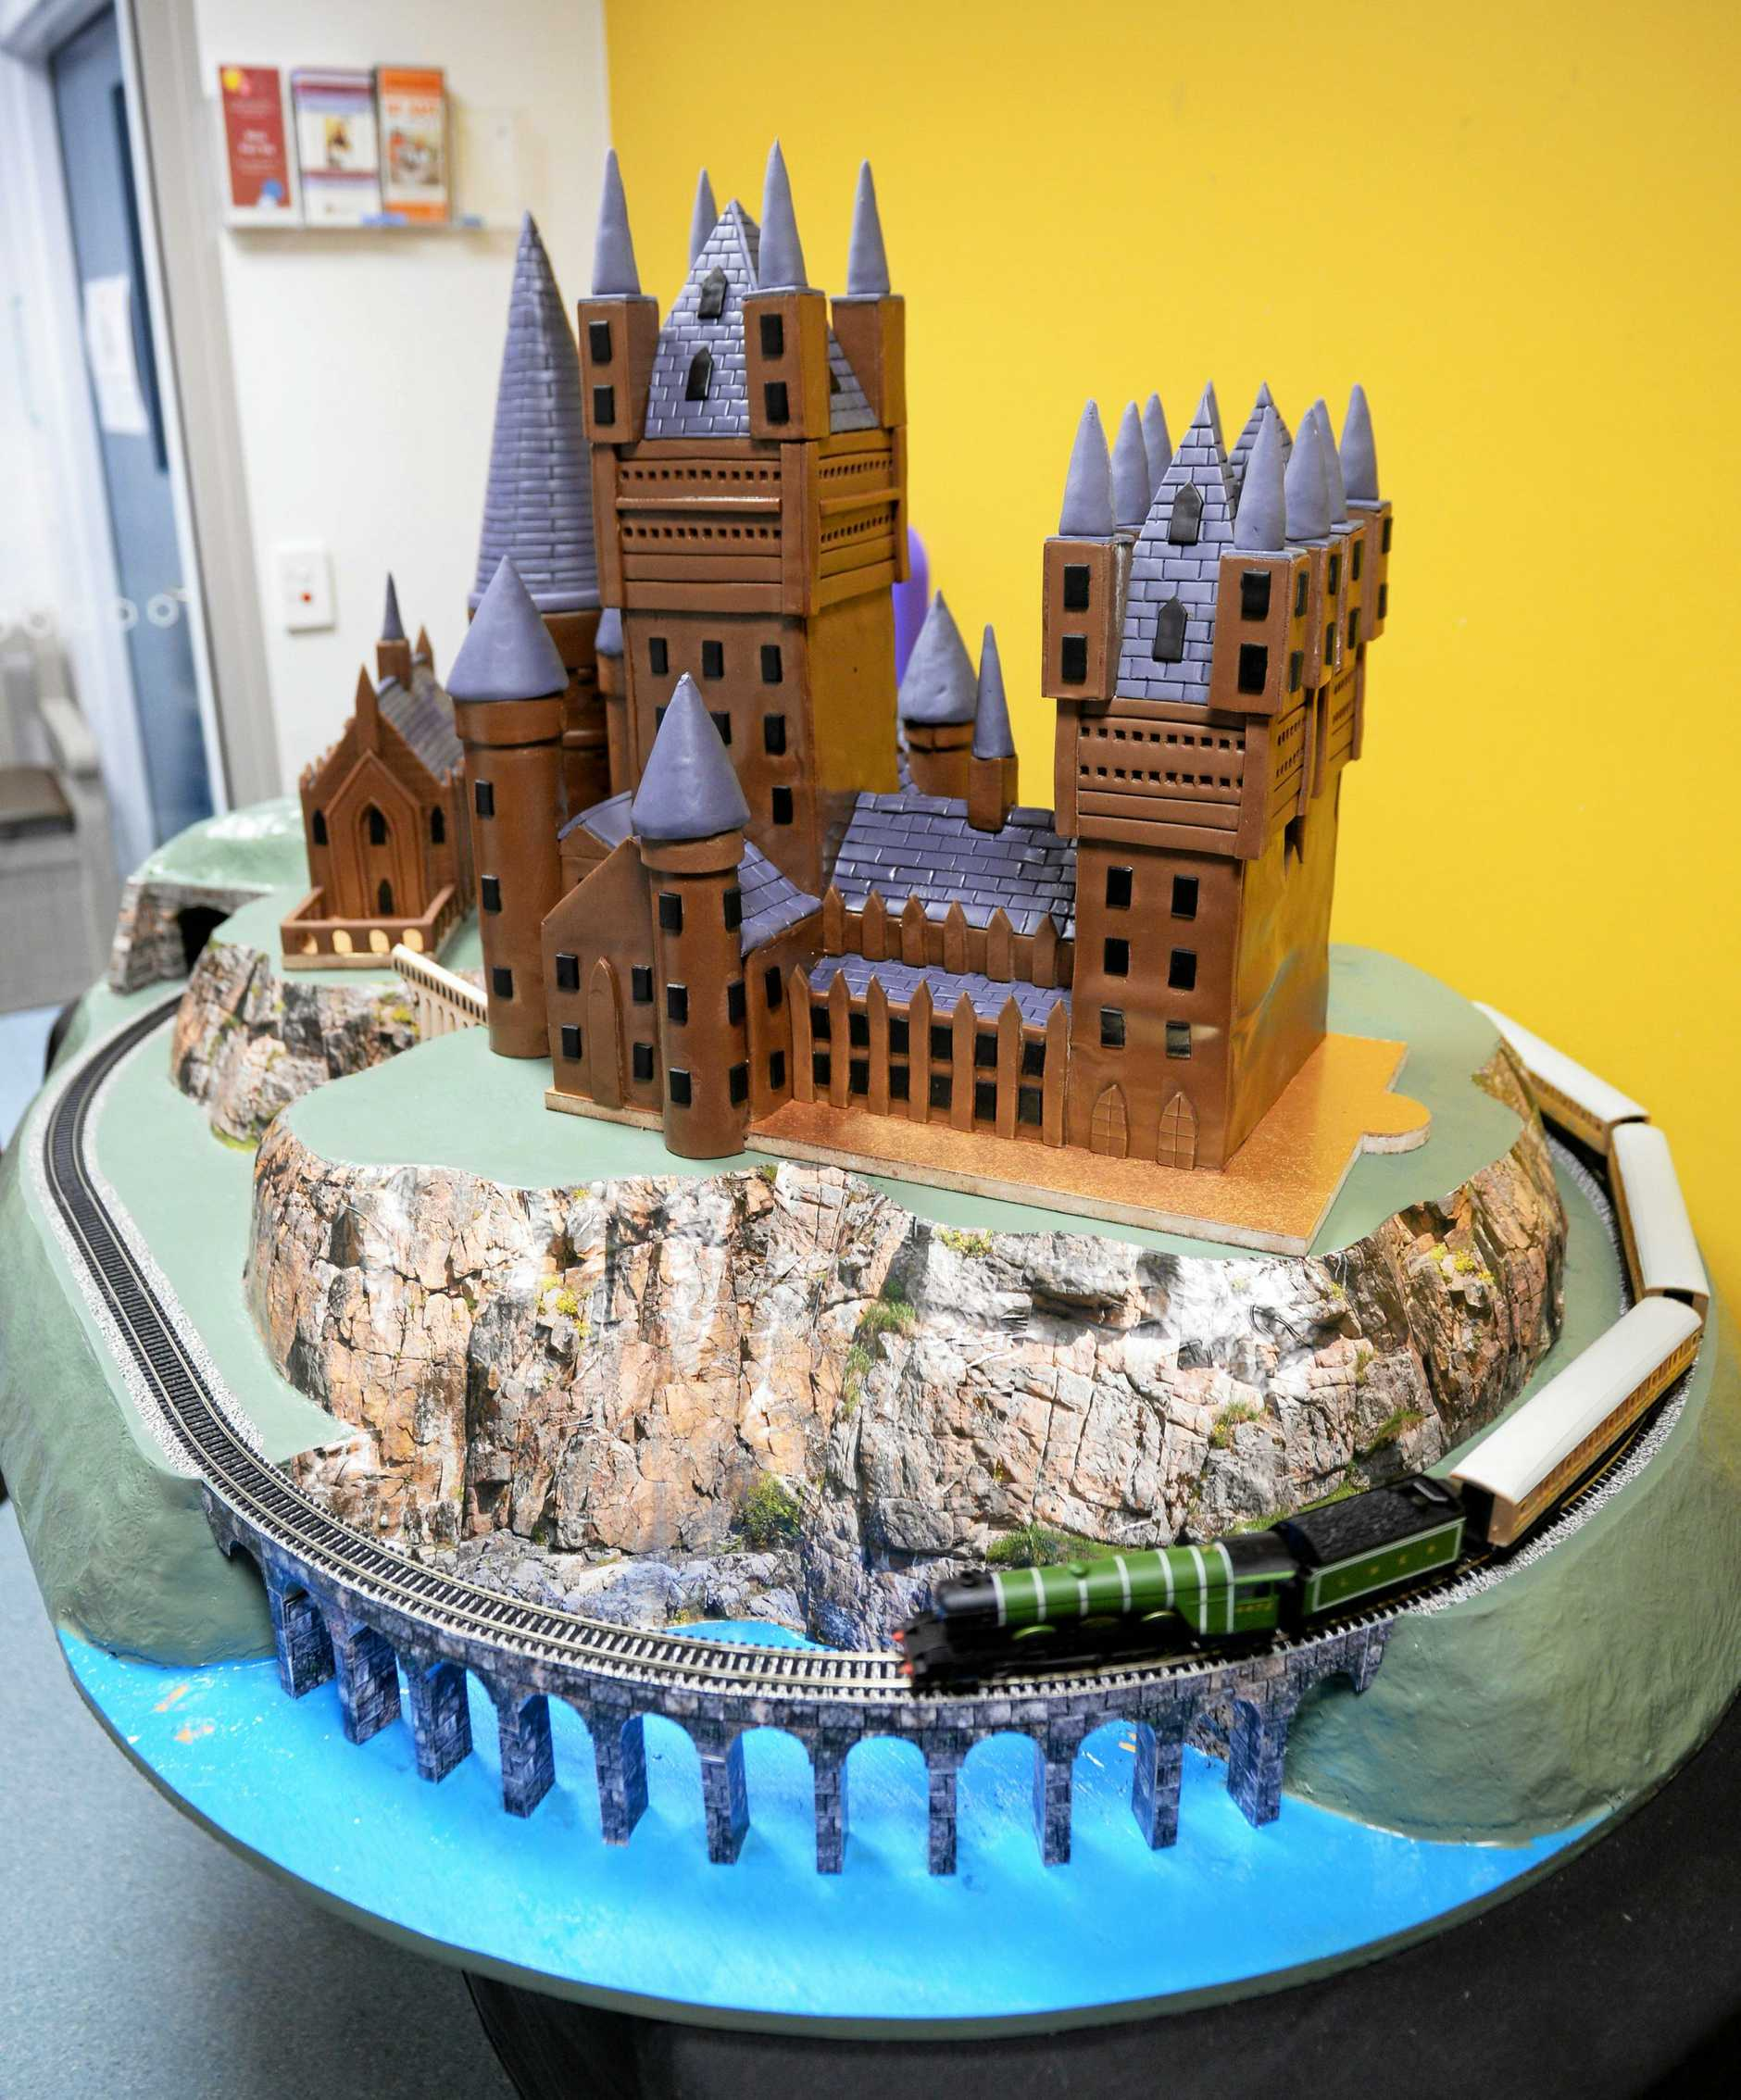 Drew Wickerson made and donated the Hogwarts cakes to Children's Ward at Rockhampton Hospital.